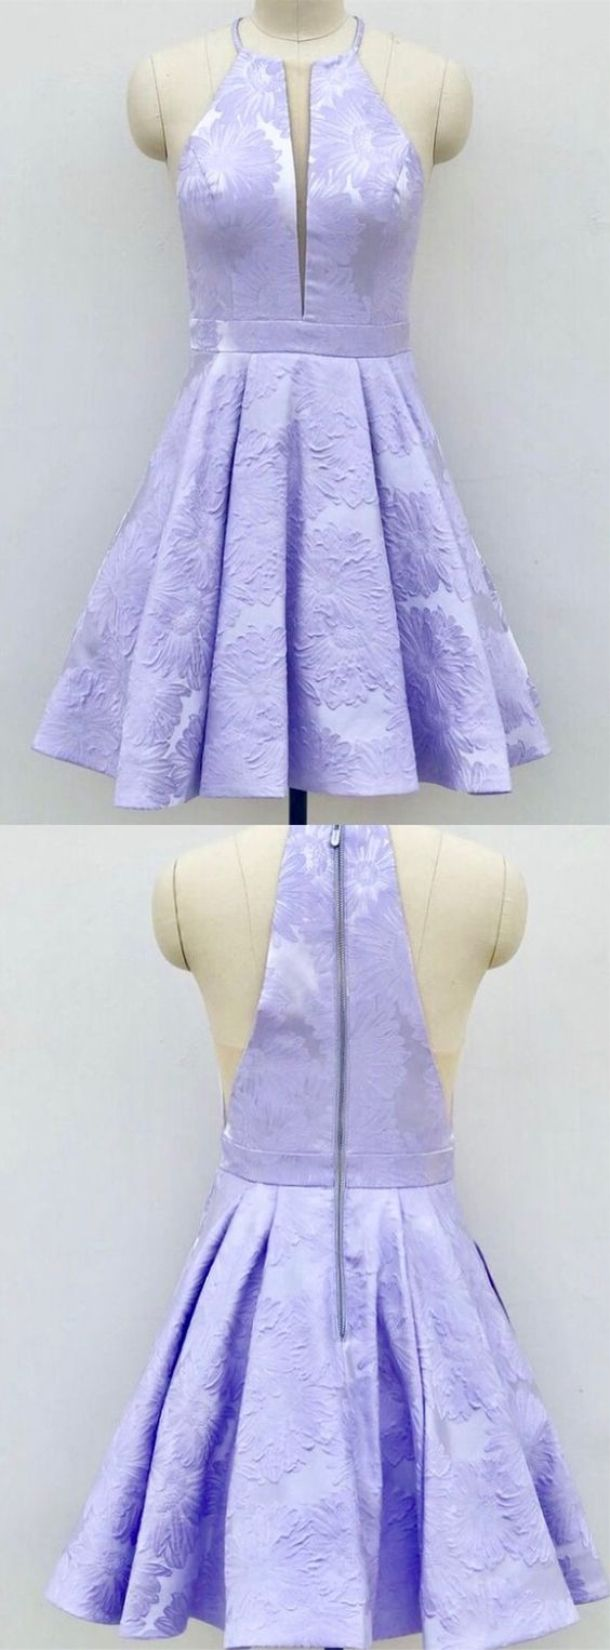 Aline crew aboveknee lilac satin printed homecoming dress with